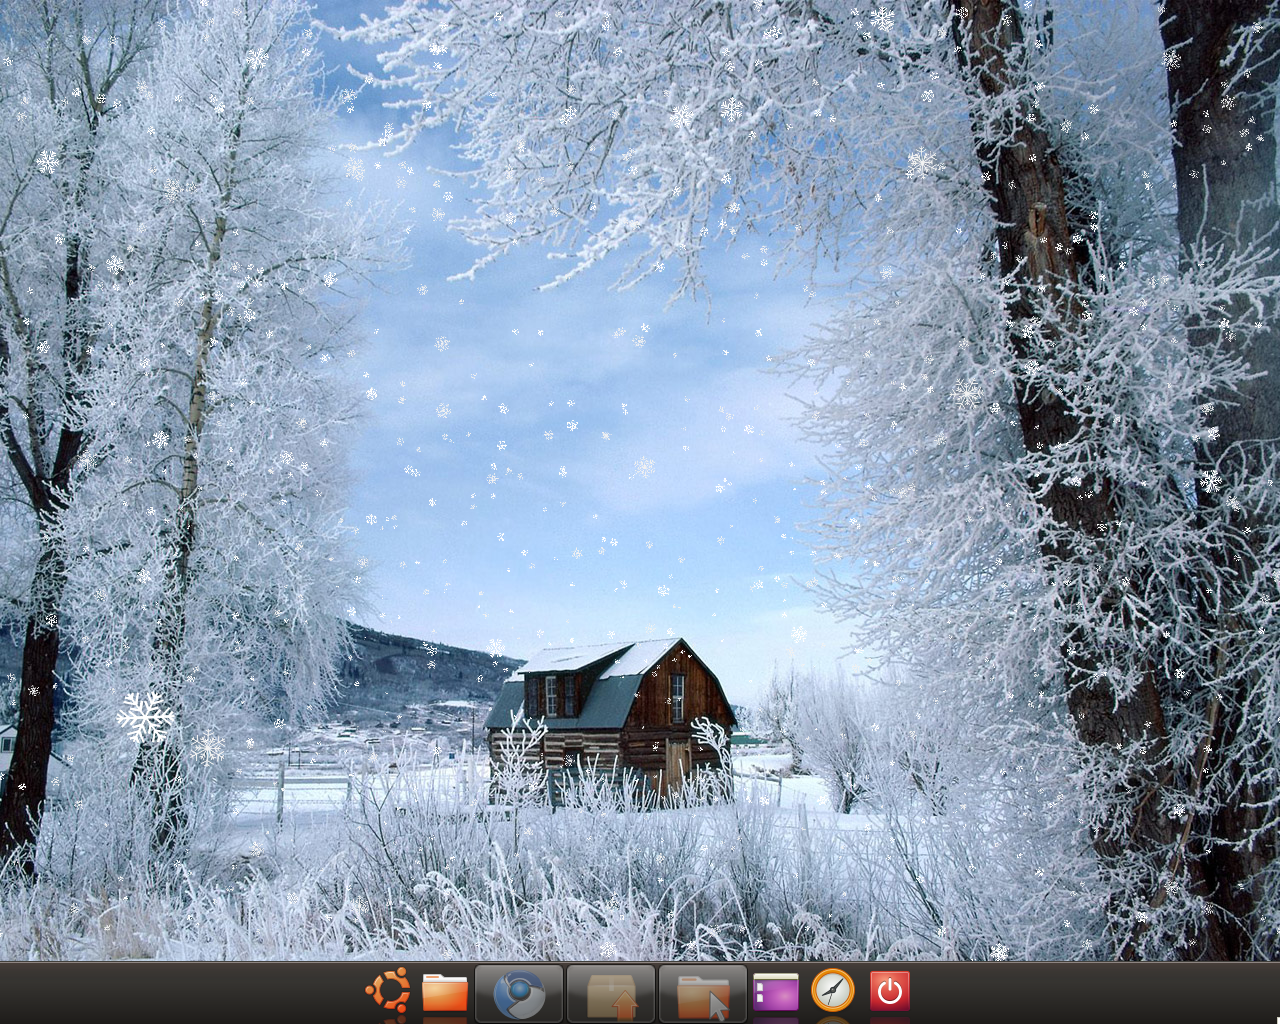 Snow falling wallpaper or screensavers wallpapersafari - Free screensavers snowflakes falling ...